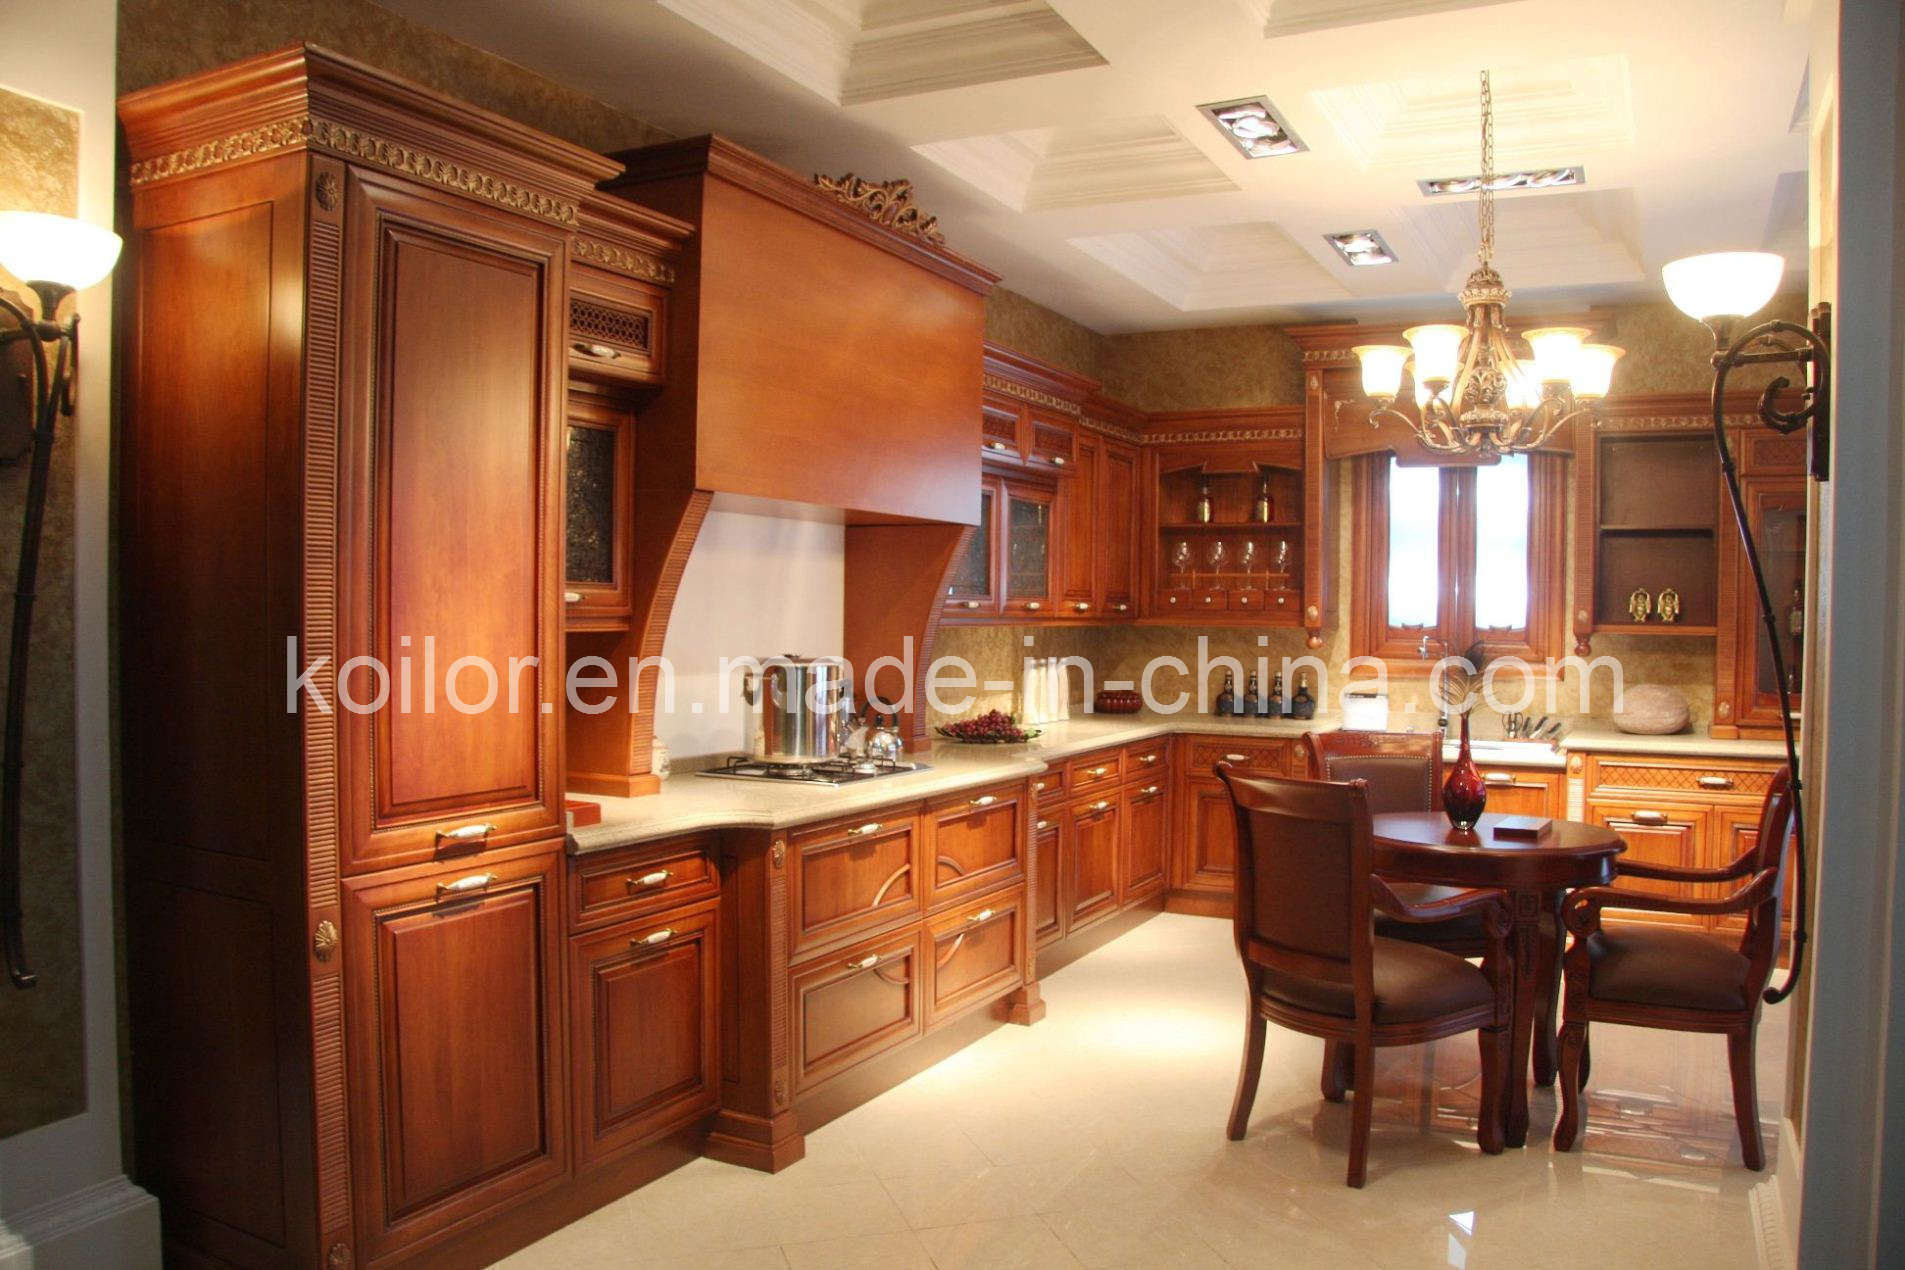 kitchen cabinets wood kitchen wooden chairs All Solid Wood KITCHEN